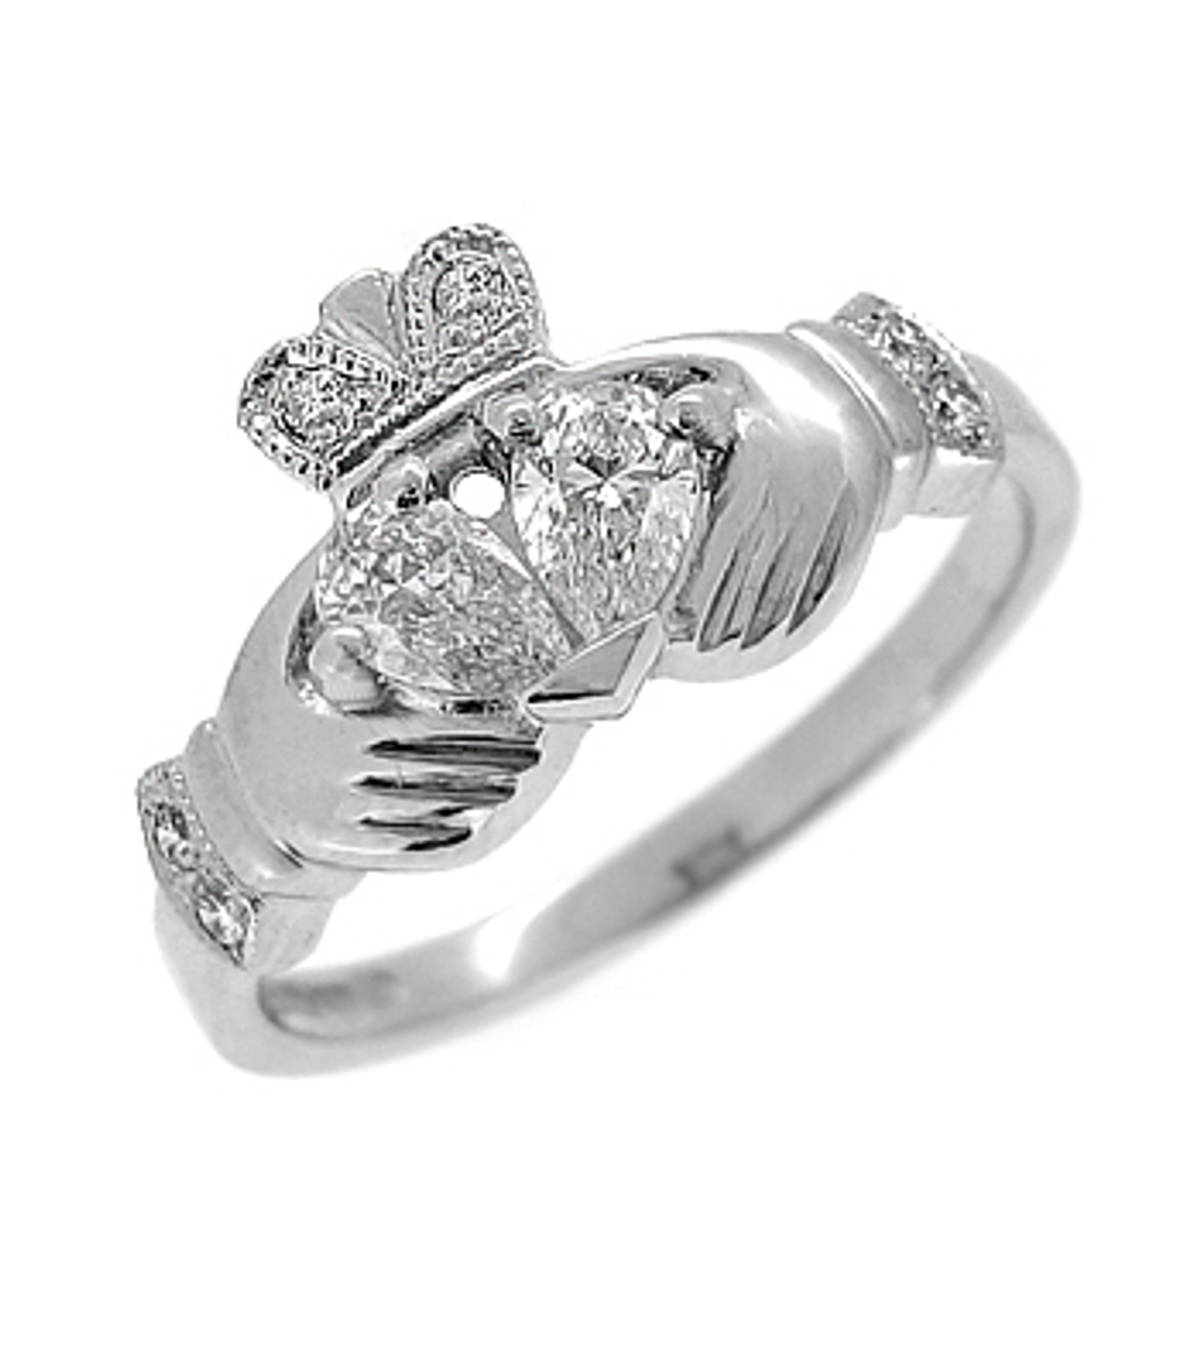 14 carat white gold 0.34cts/0.06cts diamonds claddagh engagement ring